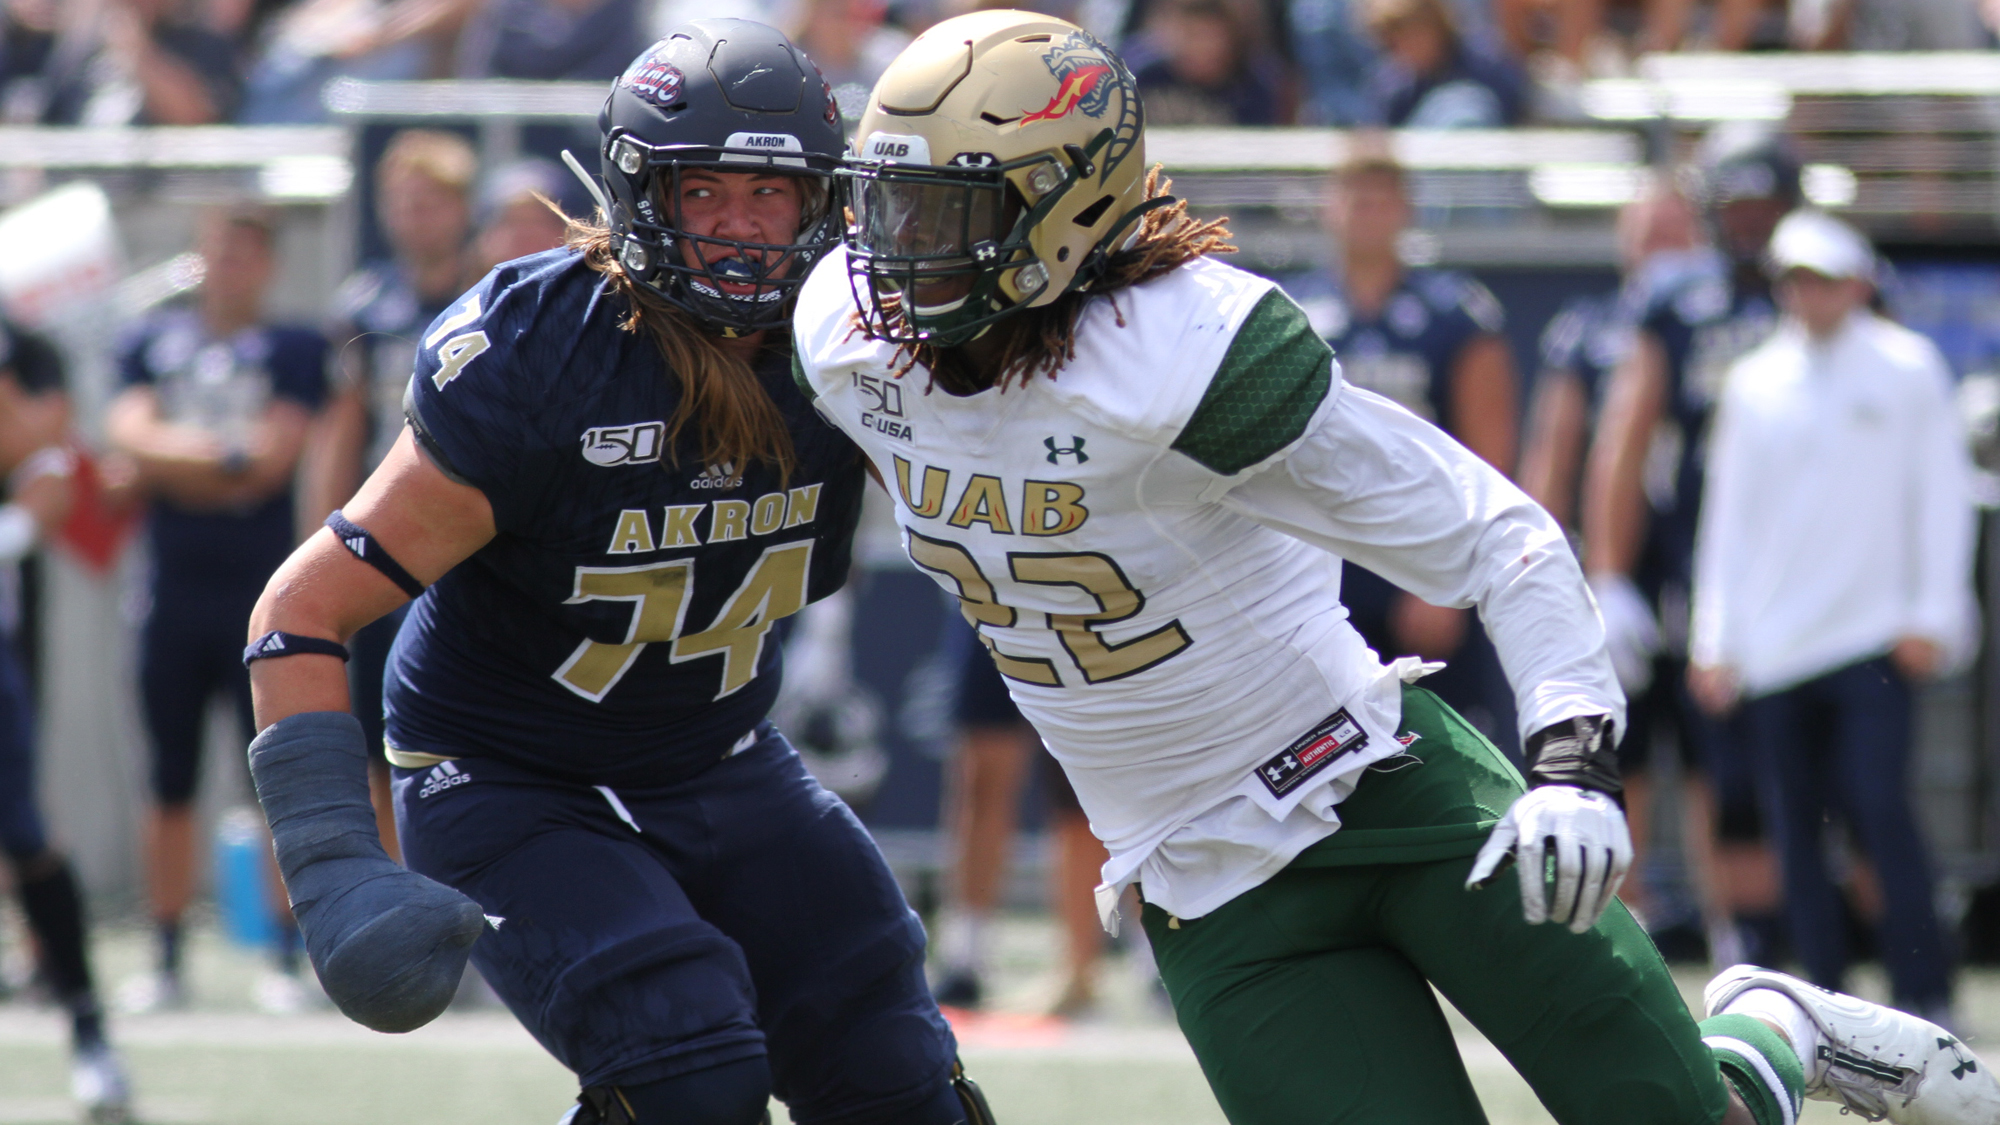 UAB vs South Alabama pick against the spread and predictions